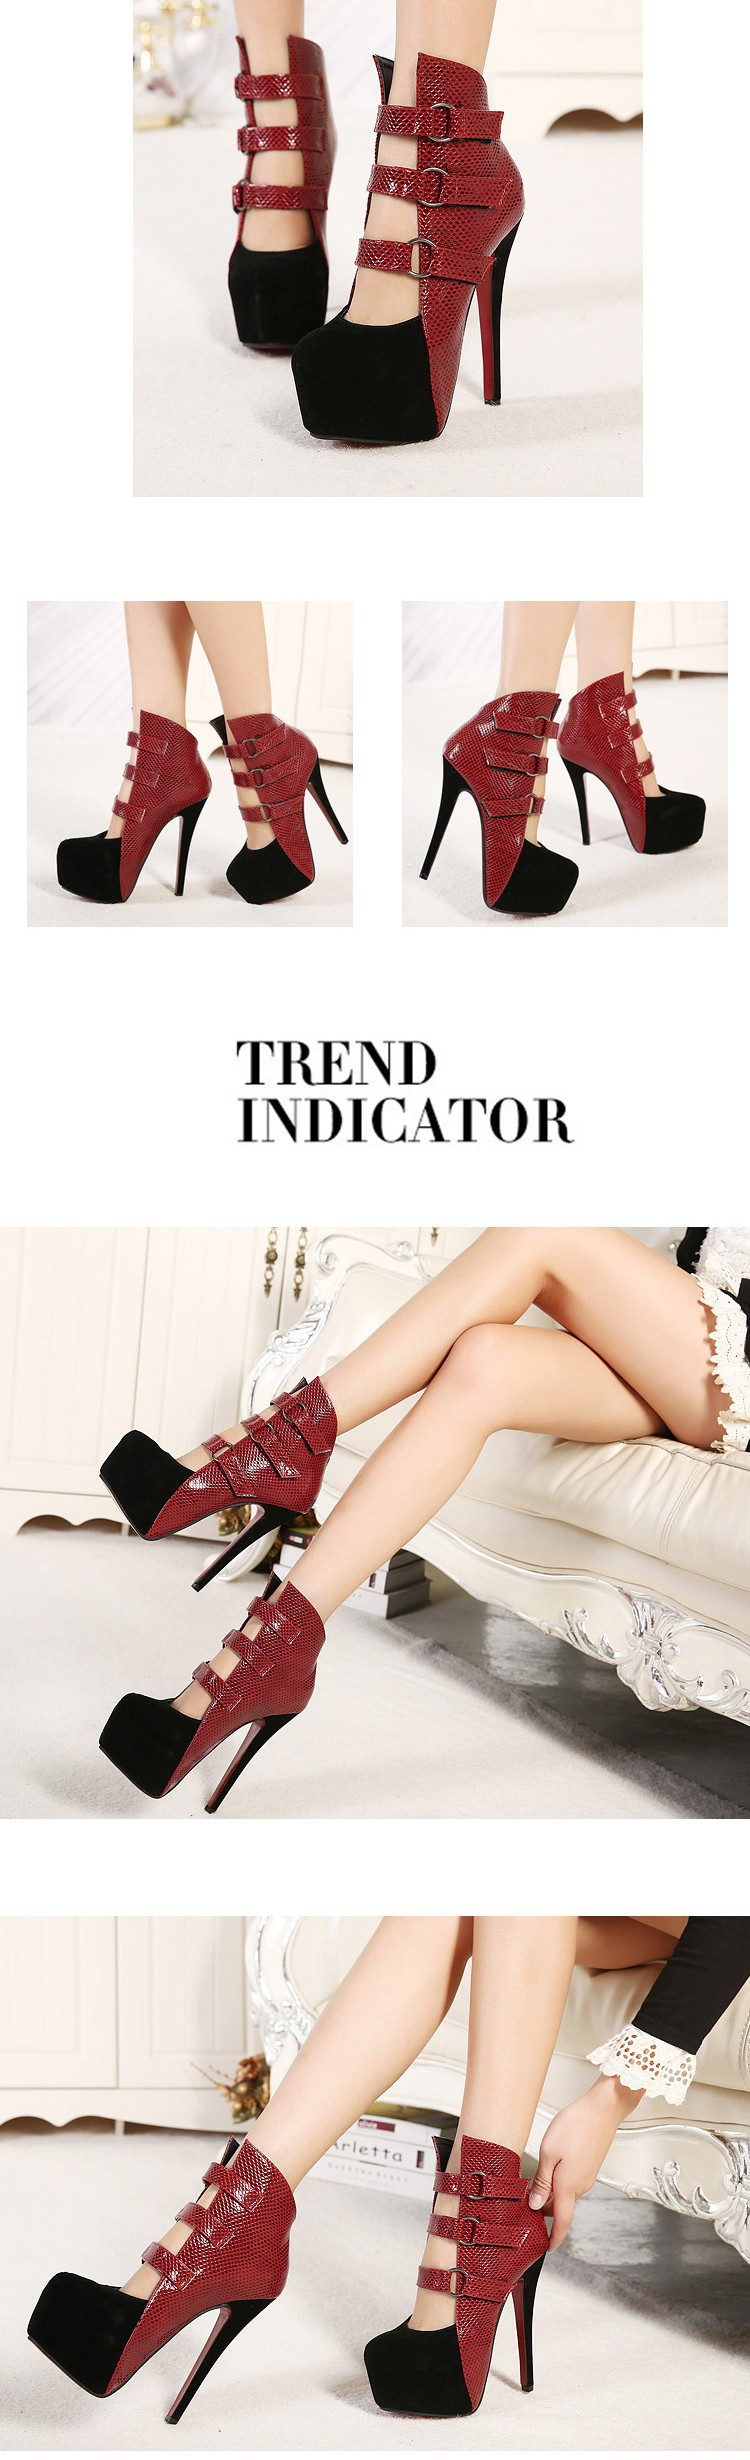 2018 New fashion sexy wedding shoes woman platform red bottom high heels women pumps and women's spring autumn shoes party